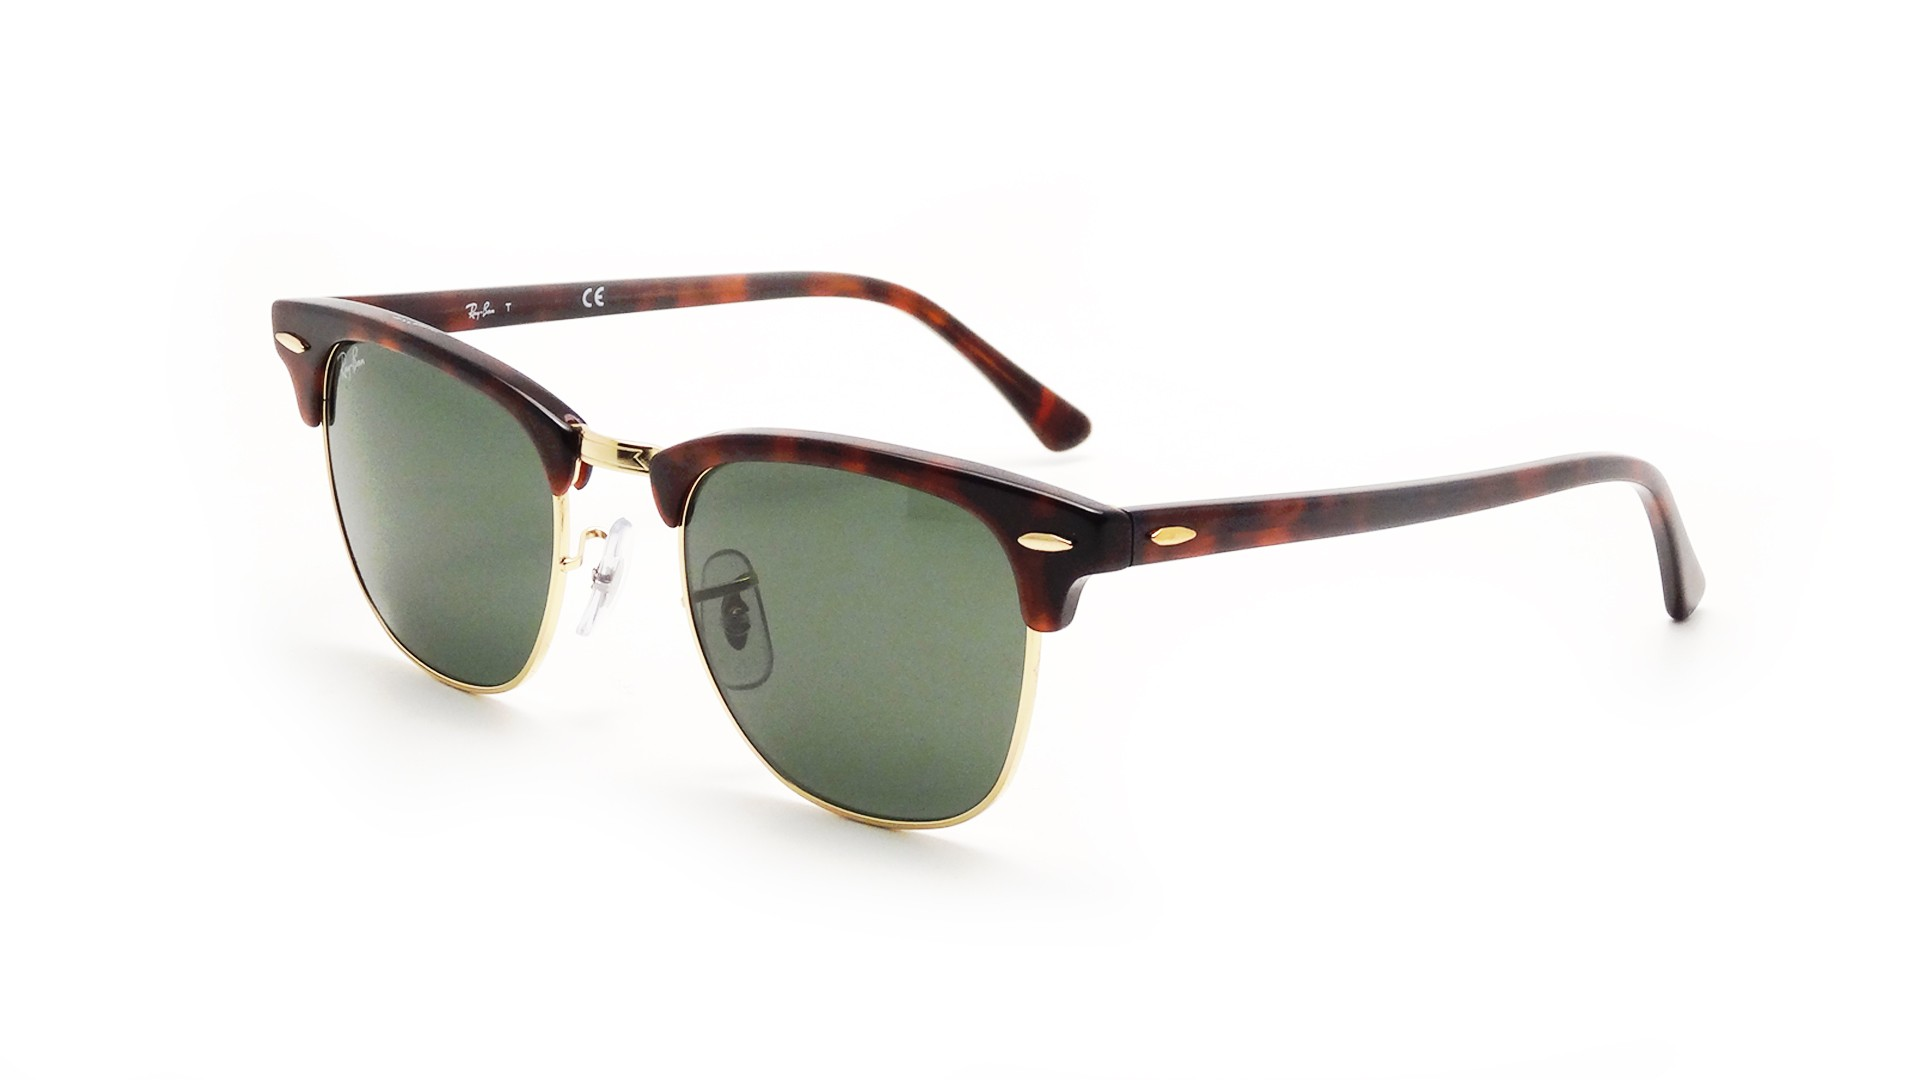 Lunettes de soleil Ray-Ban Clubmaster Classic Écaille RB3016 W0366 49-21  Small bbef2ad745b2